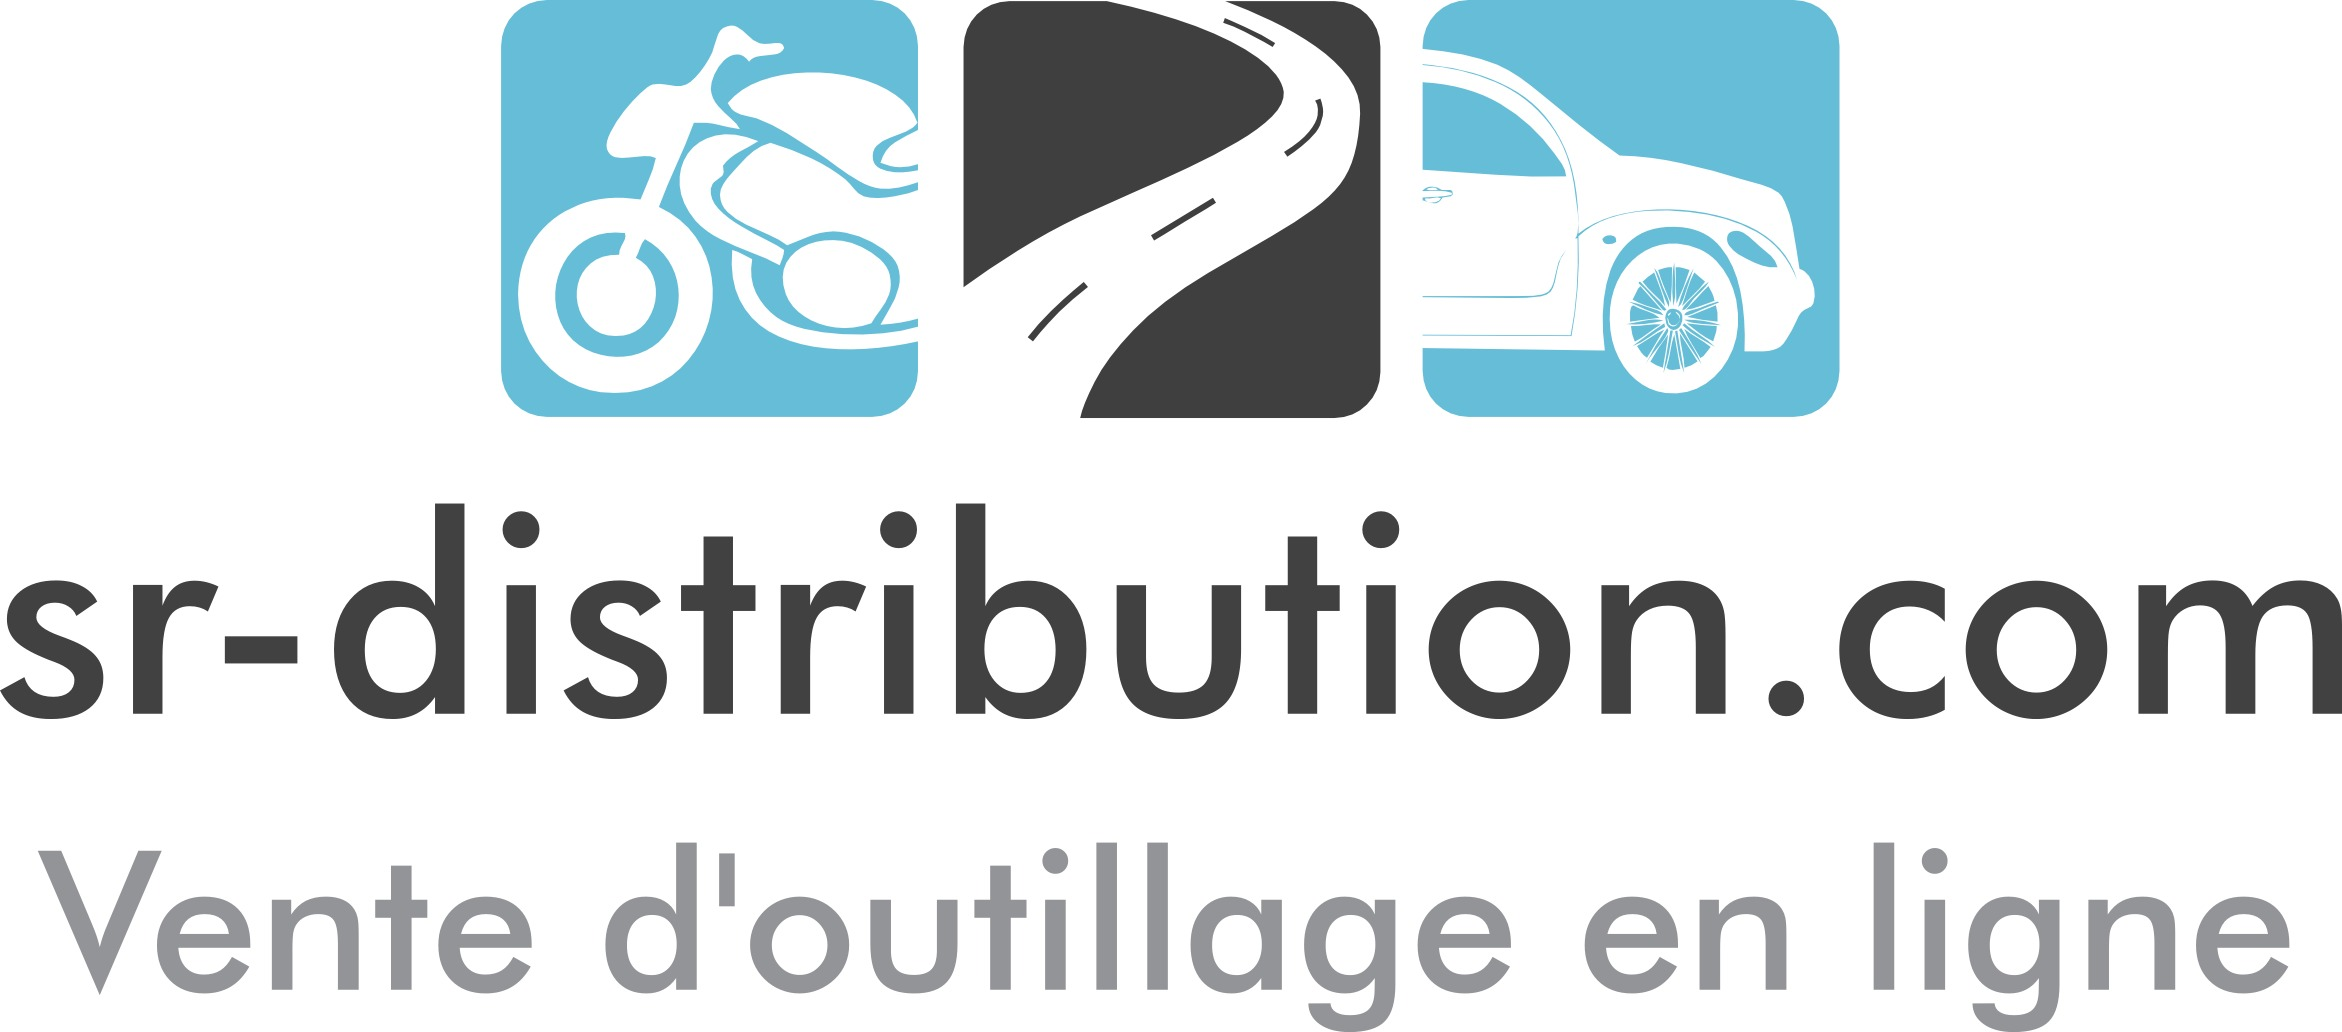 sr-distribution.com